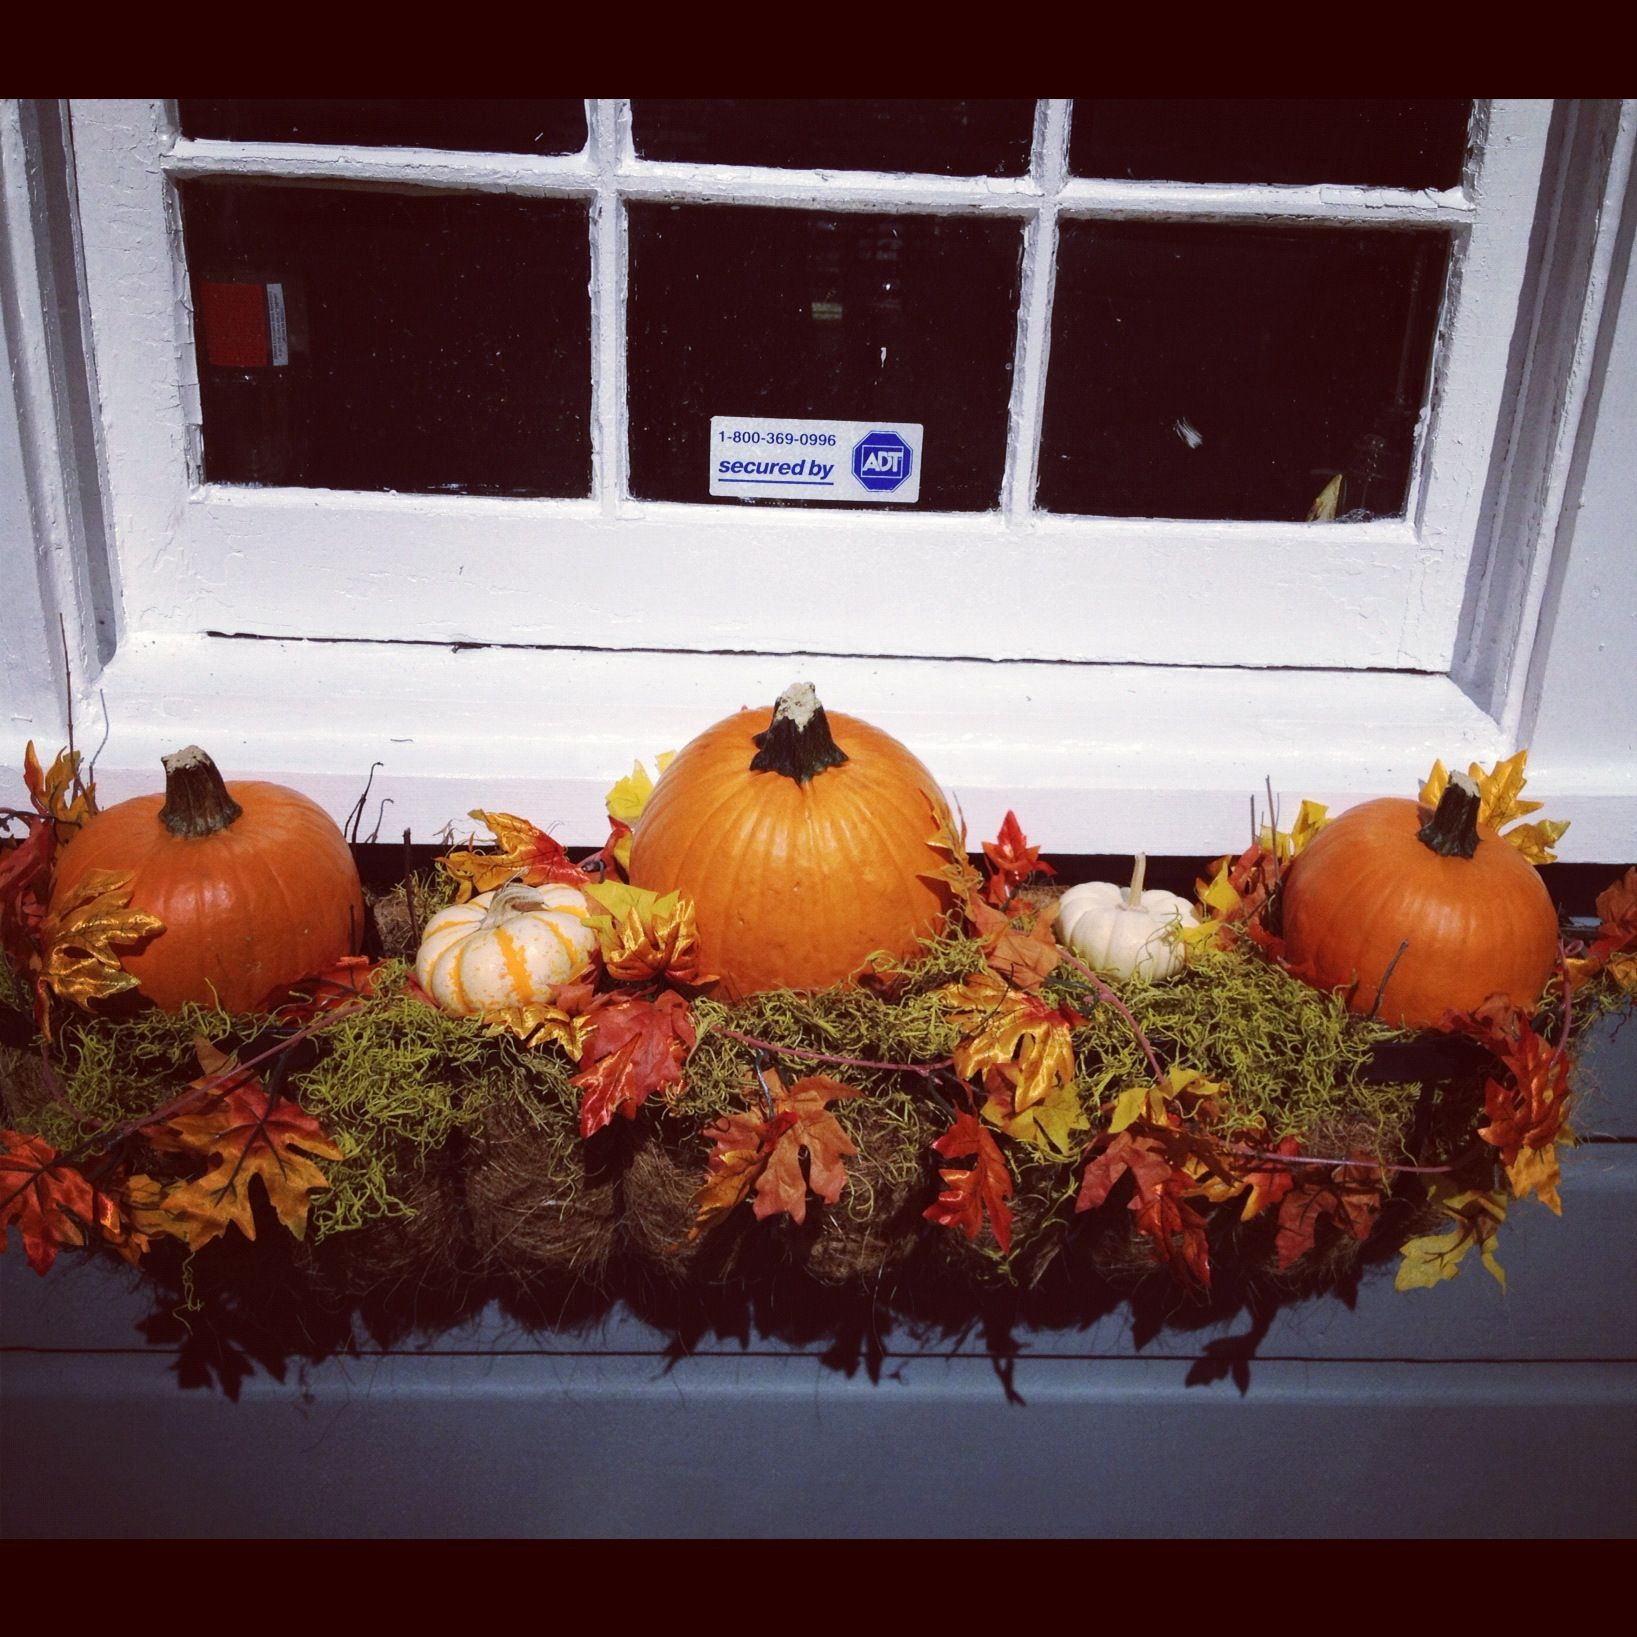 Redo front box with Pumpkins, garland  leaves for fall/Halloween - halloween window decor